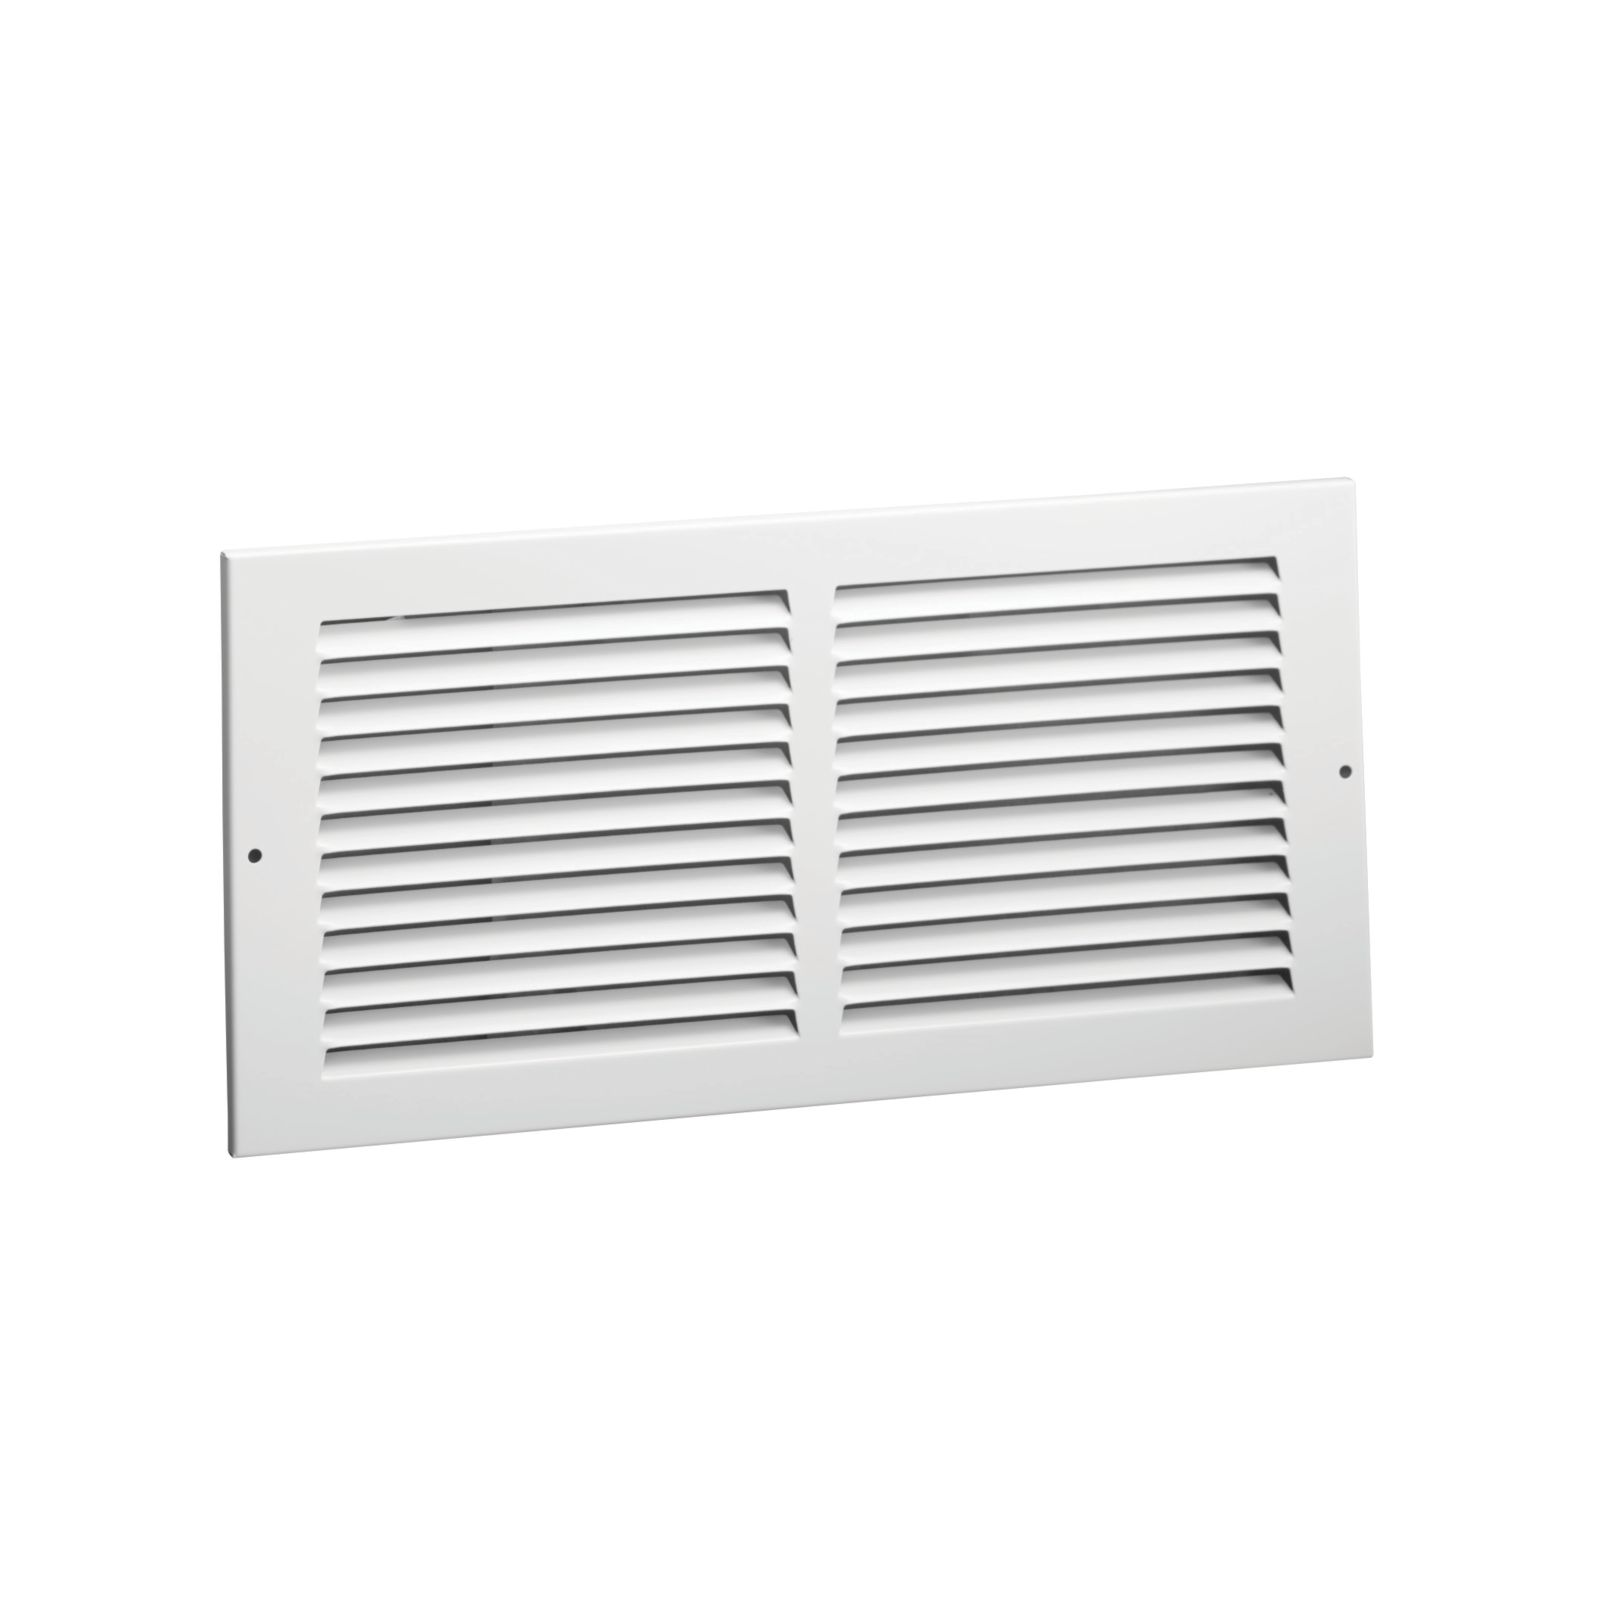 "Hart & Cooley 043316 - #672 Steel Return Air Grille, White Finish, 12"" X 8"""